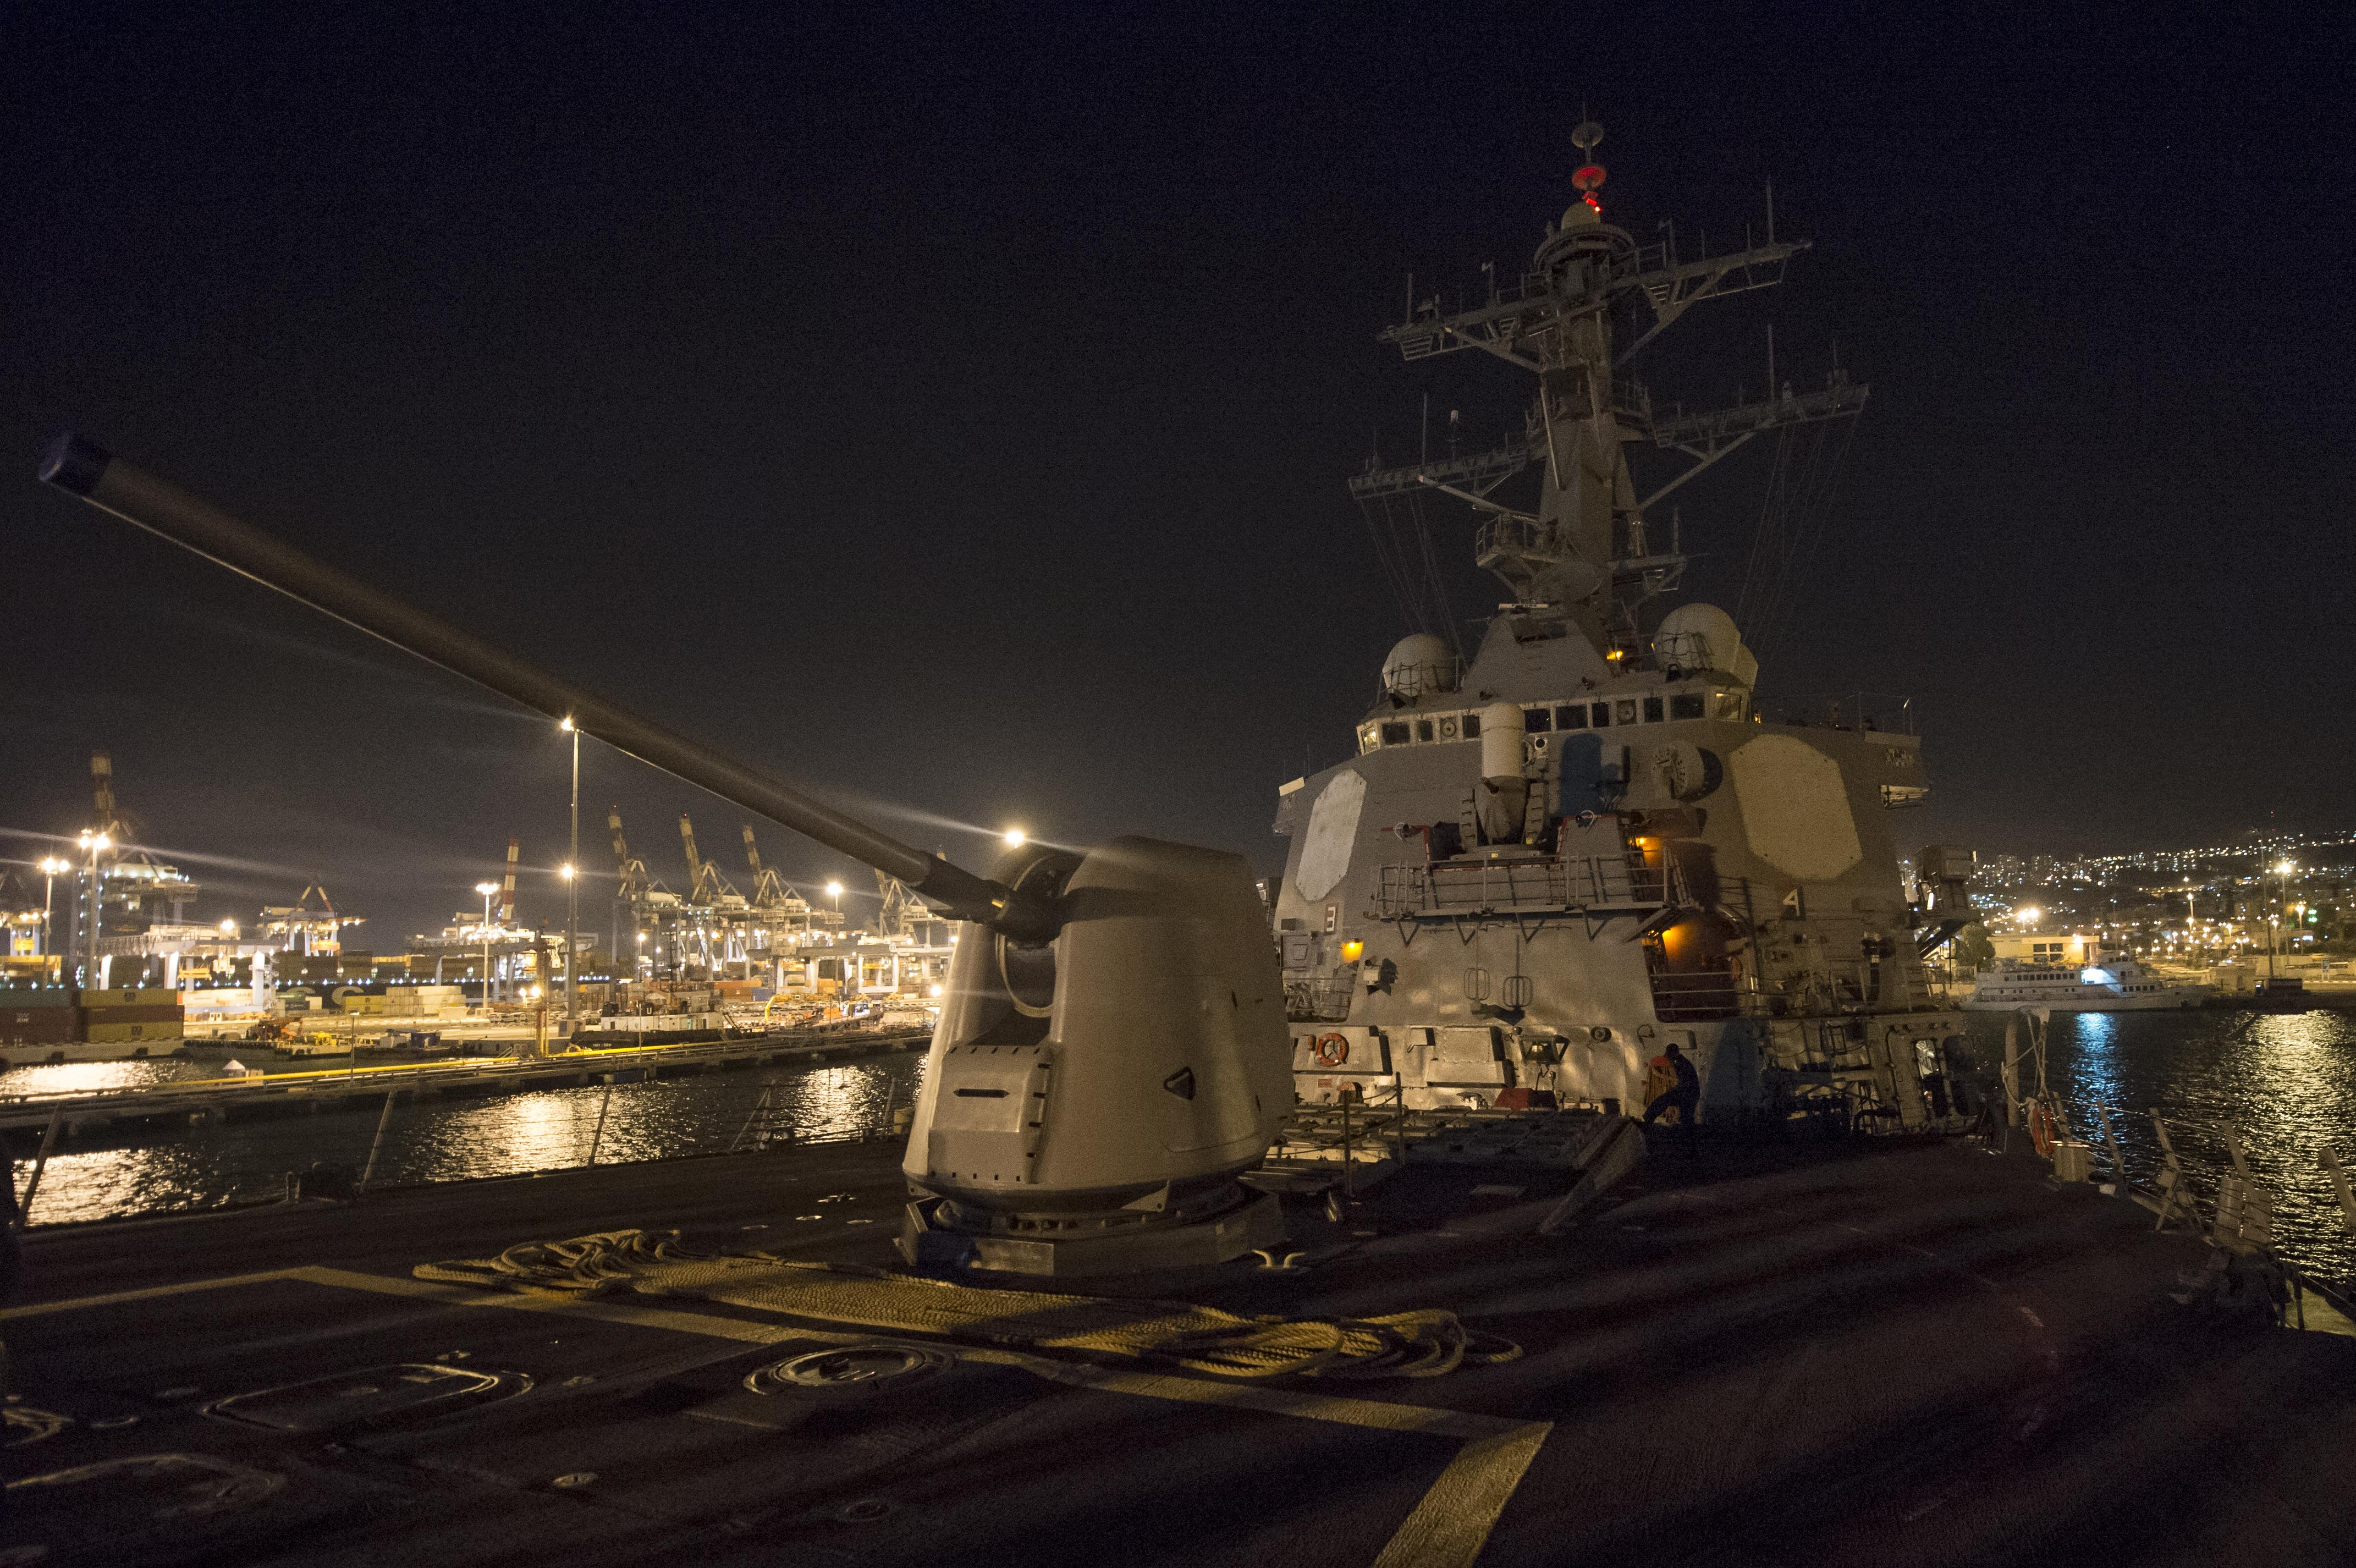 USS Cole (DDG 67) makes preparations for getting underway after a scheduled port visit to Haifa, Israel on Sept. 18, 2014. US Navy Photo